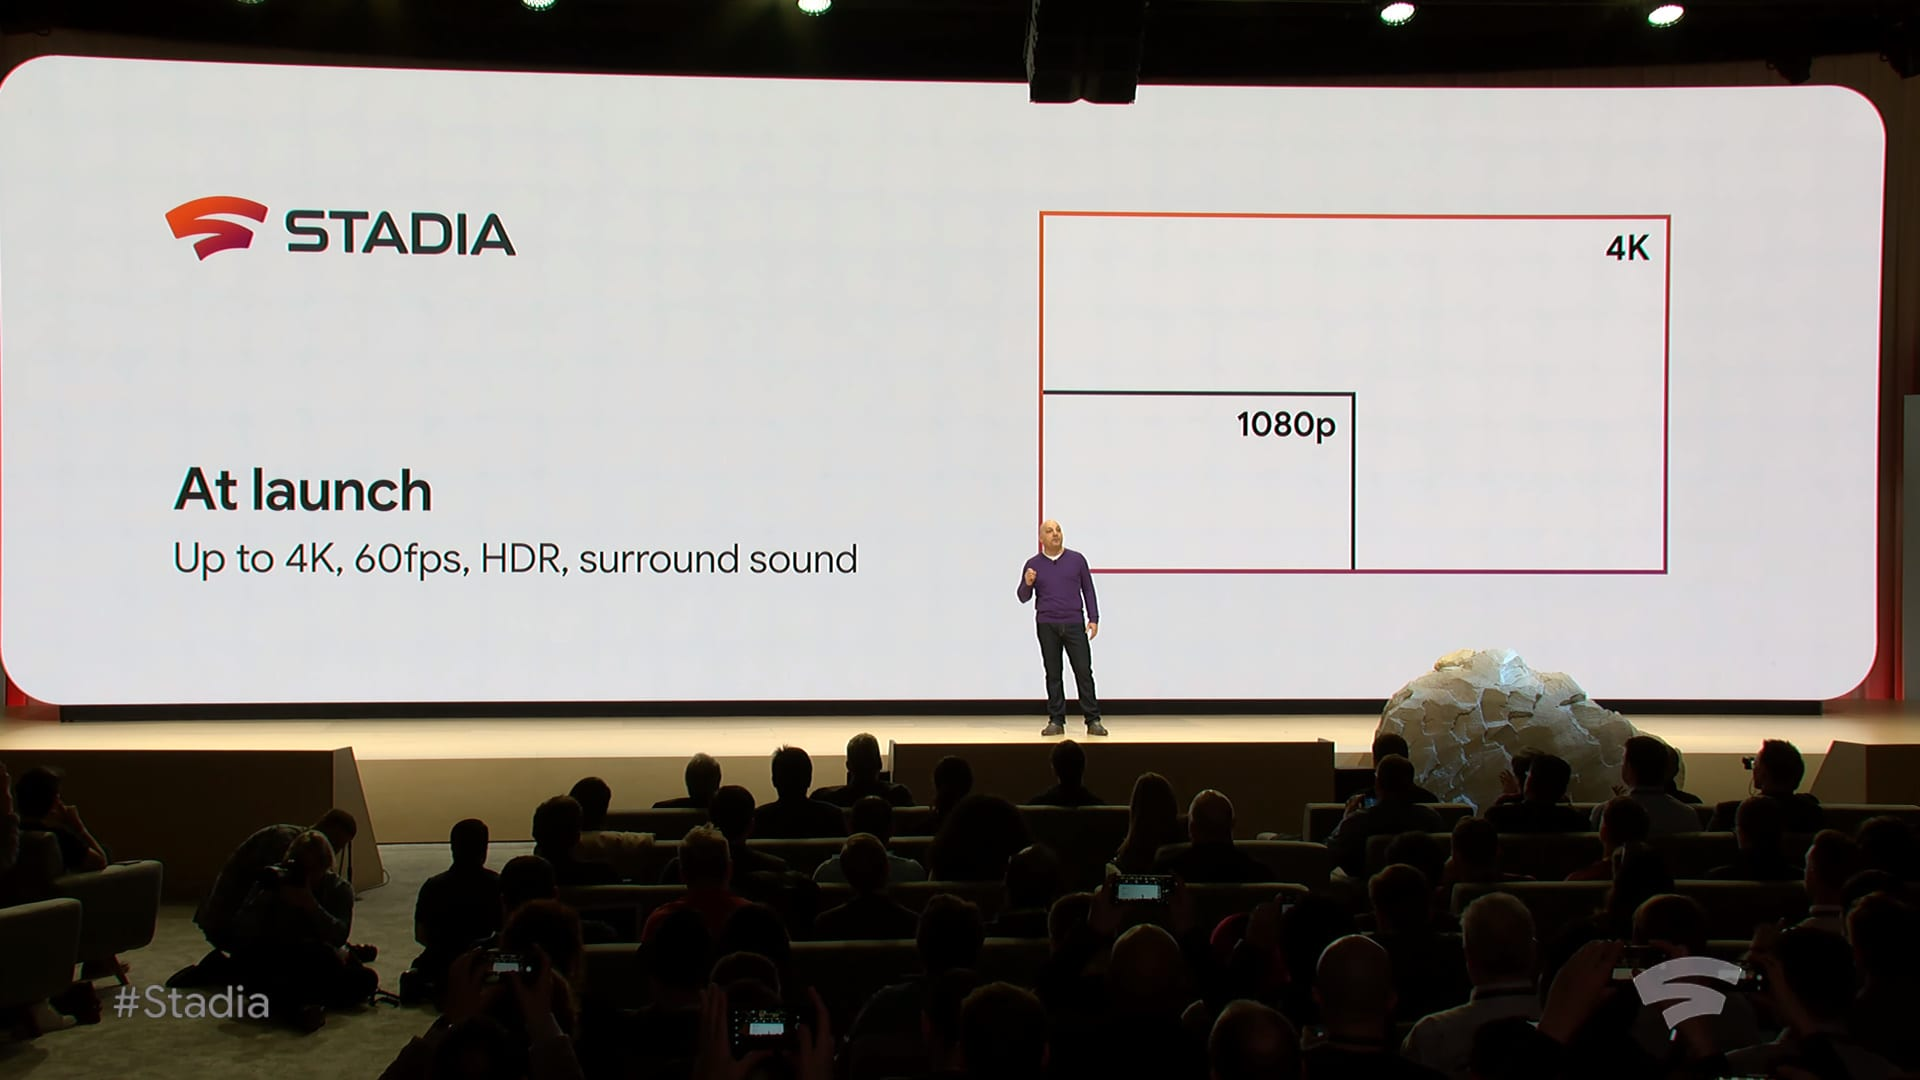 Stadia – Google unveils new cloud gaming platform and its